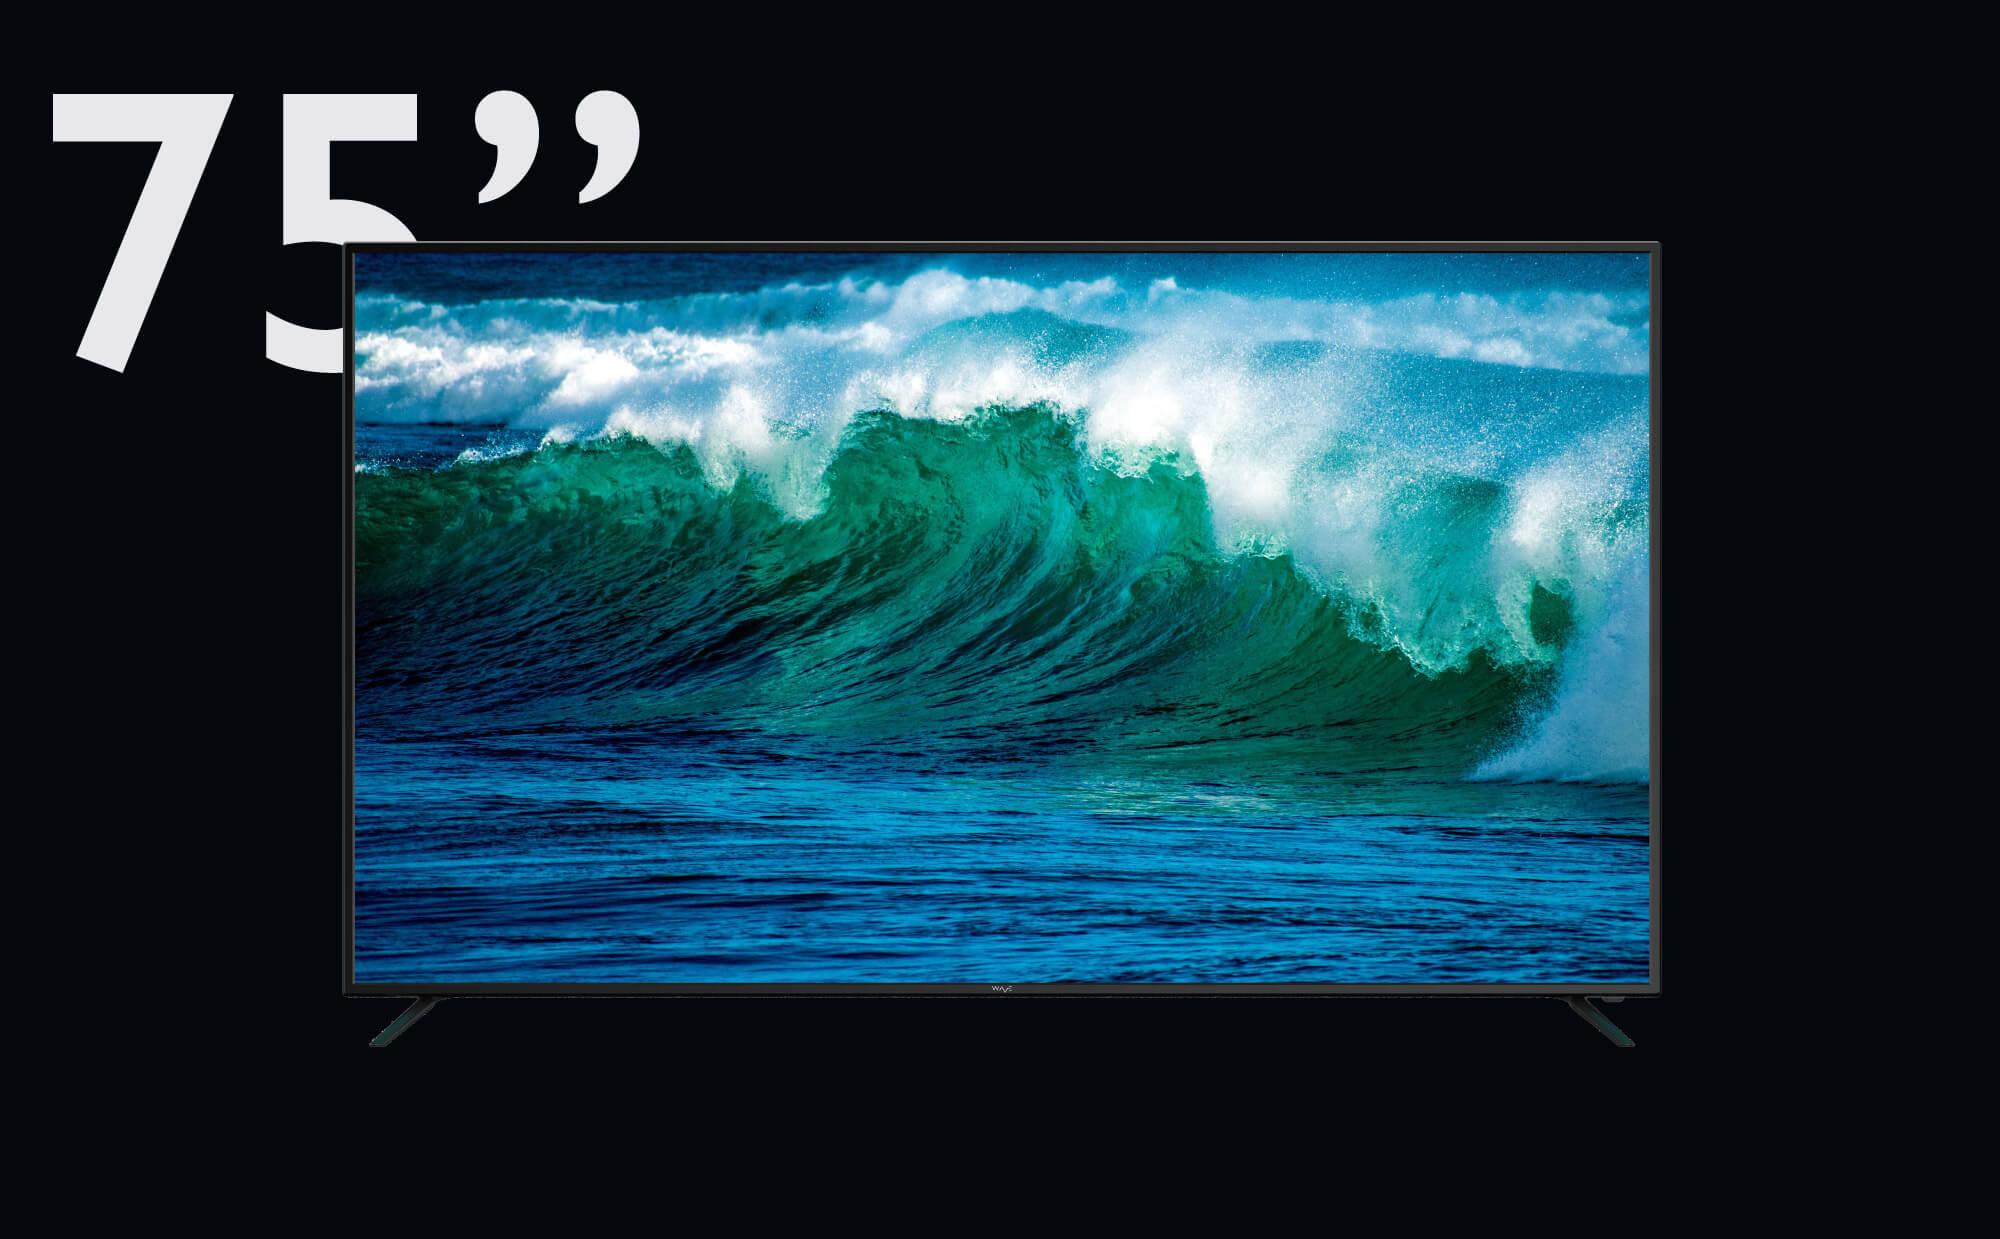 """WAVE Electronics presents 75"""" MAVERICK with DOLBY AUDIO, super slim frame and 4K screen"""